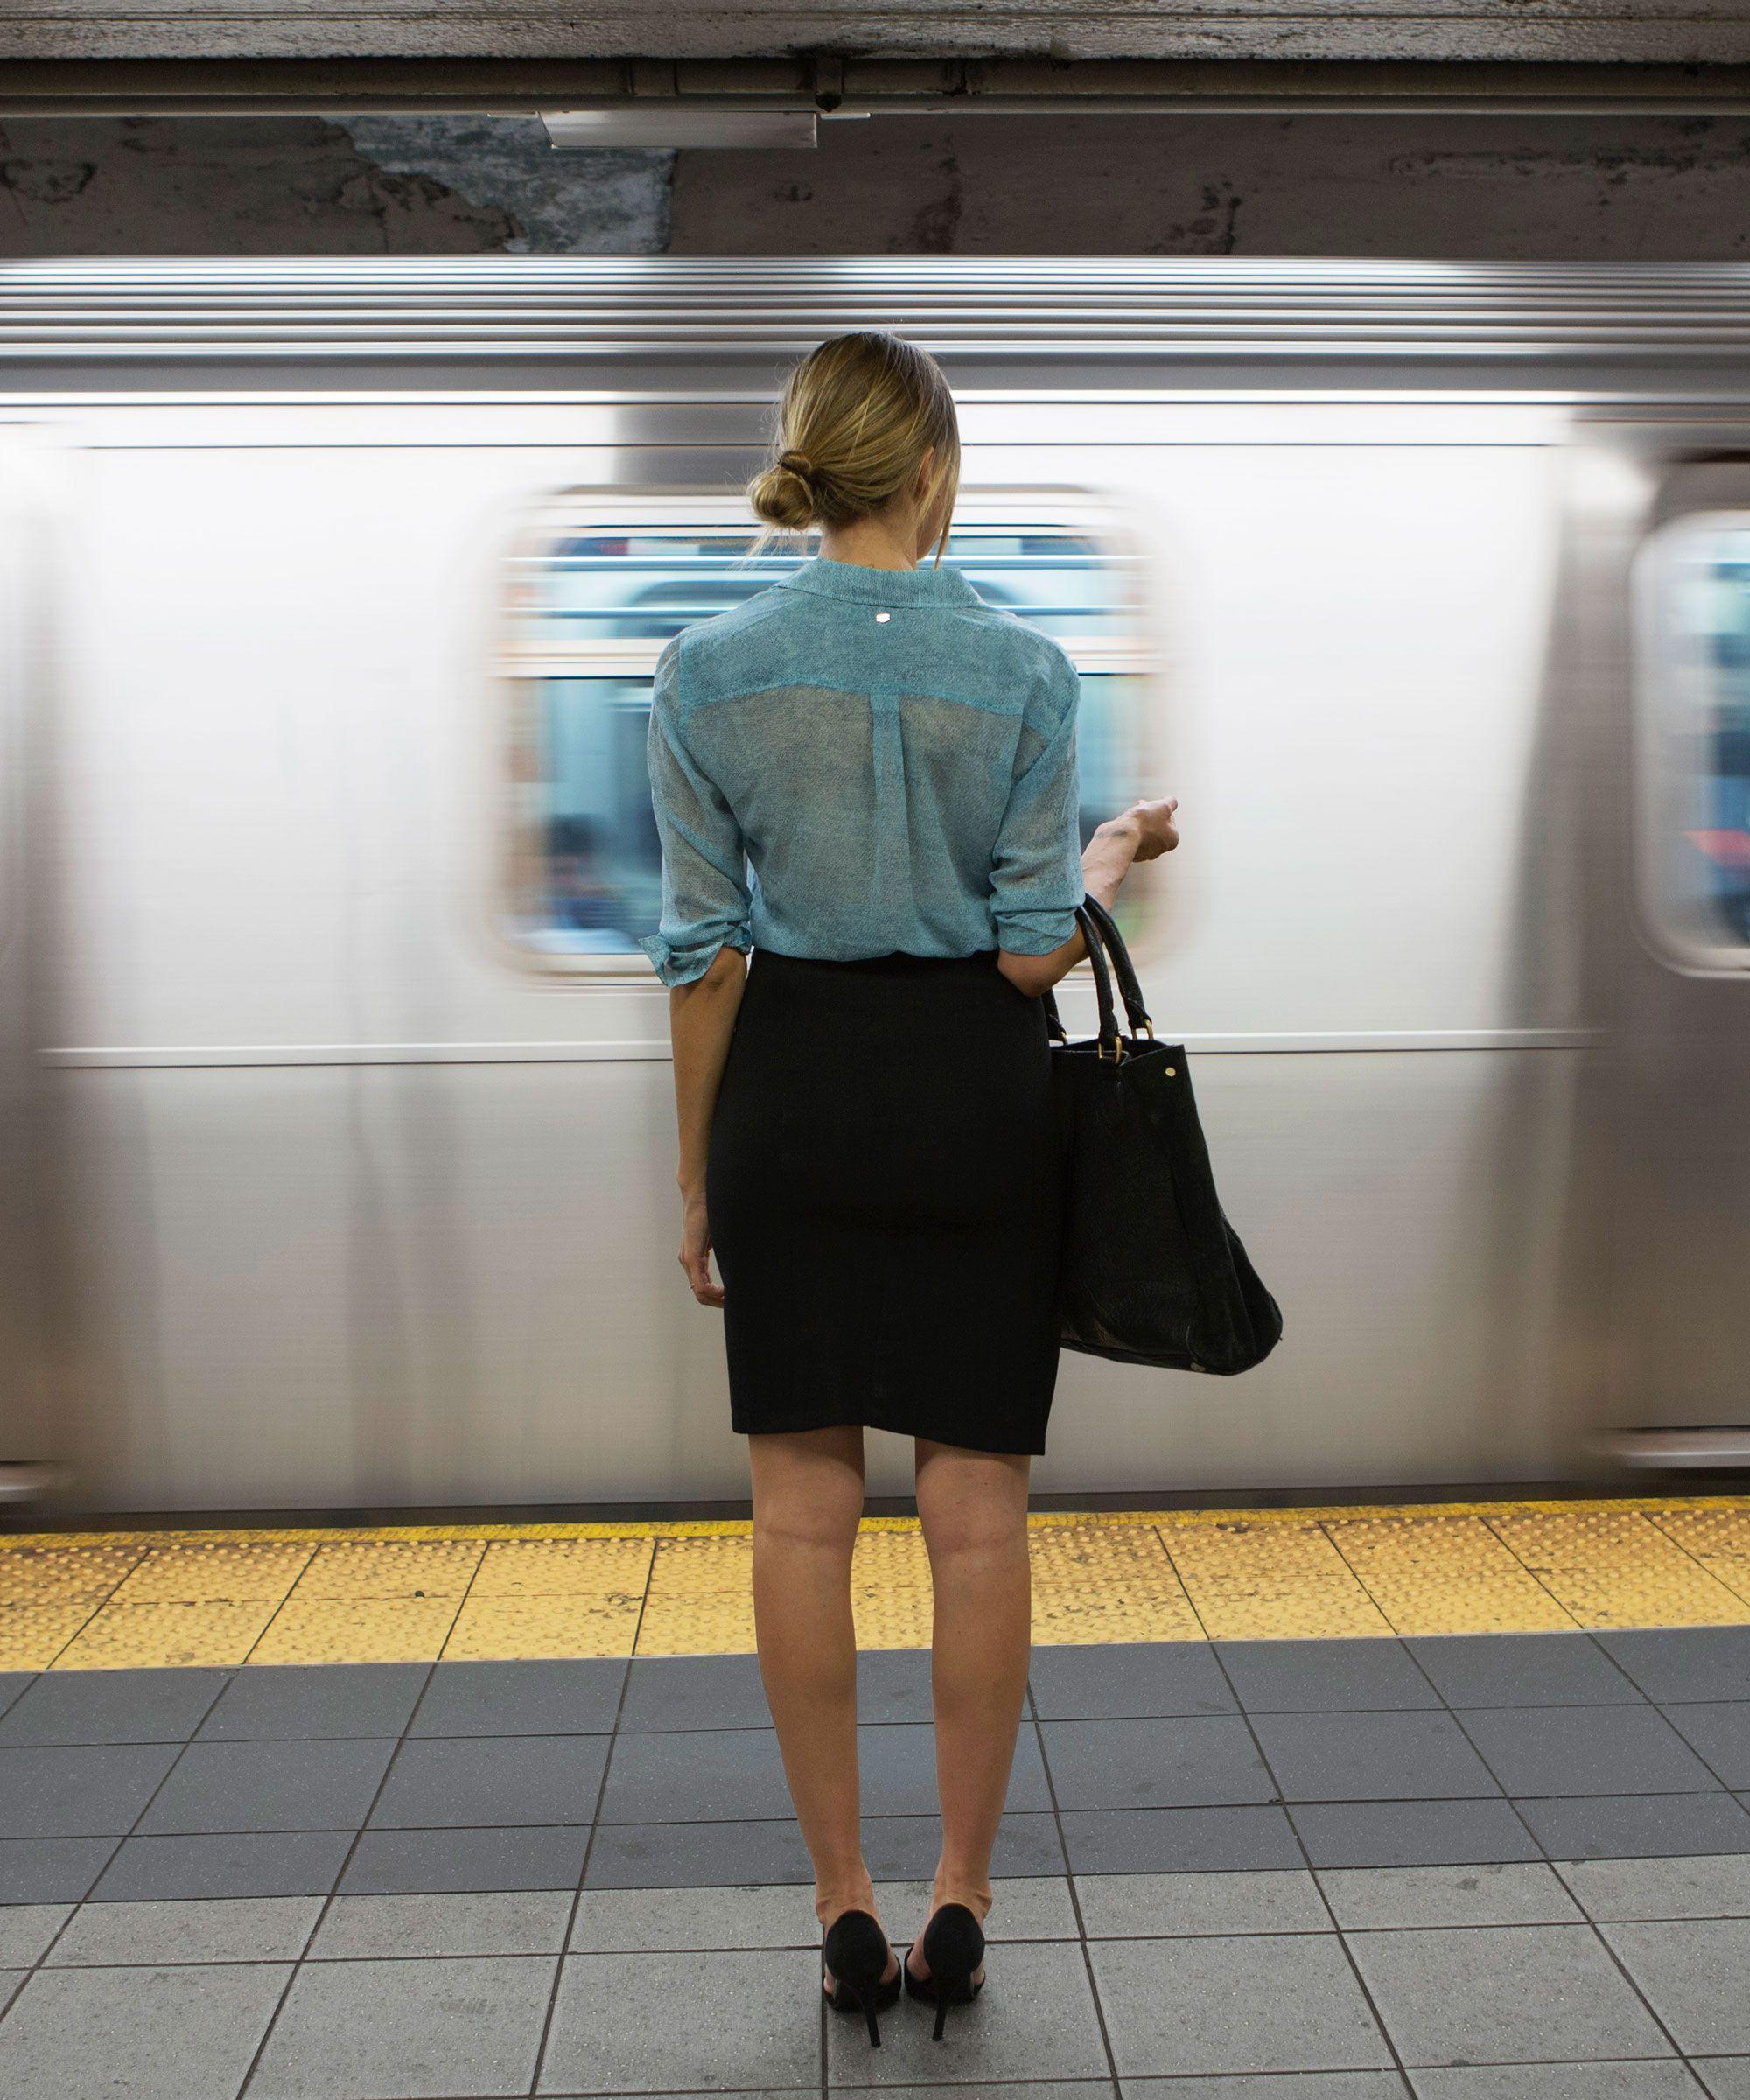 ALL The Inappropriate Questions The NYPD Asked Me After I Was Sexually Assaulted